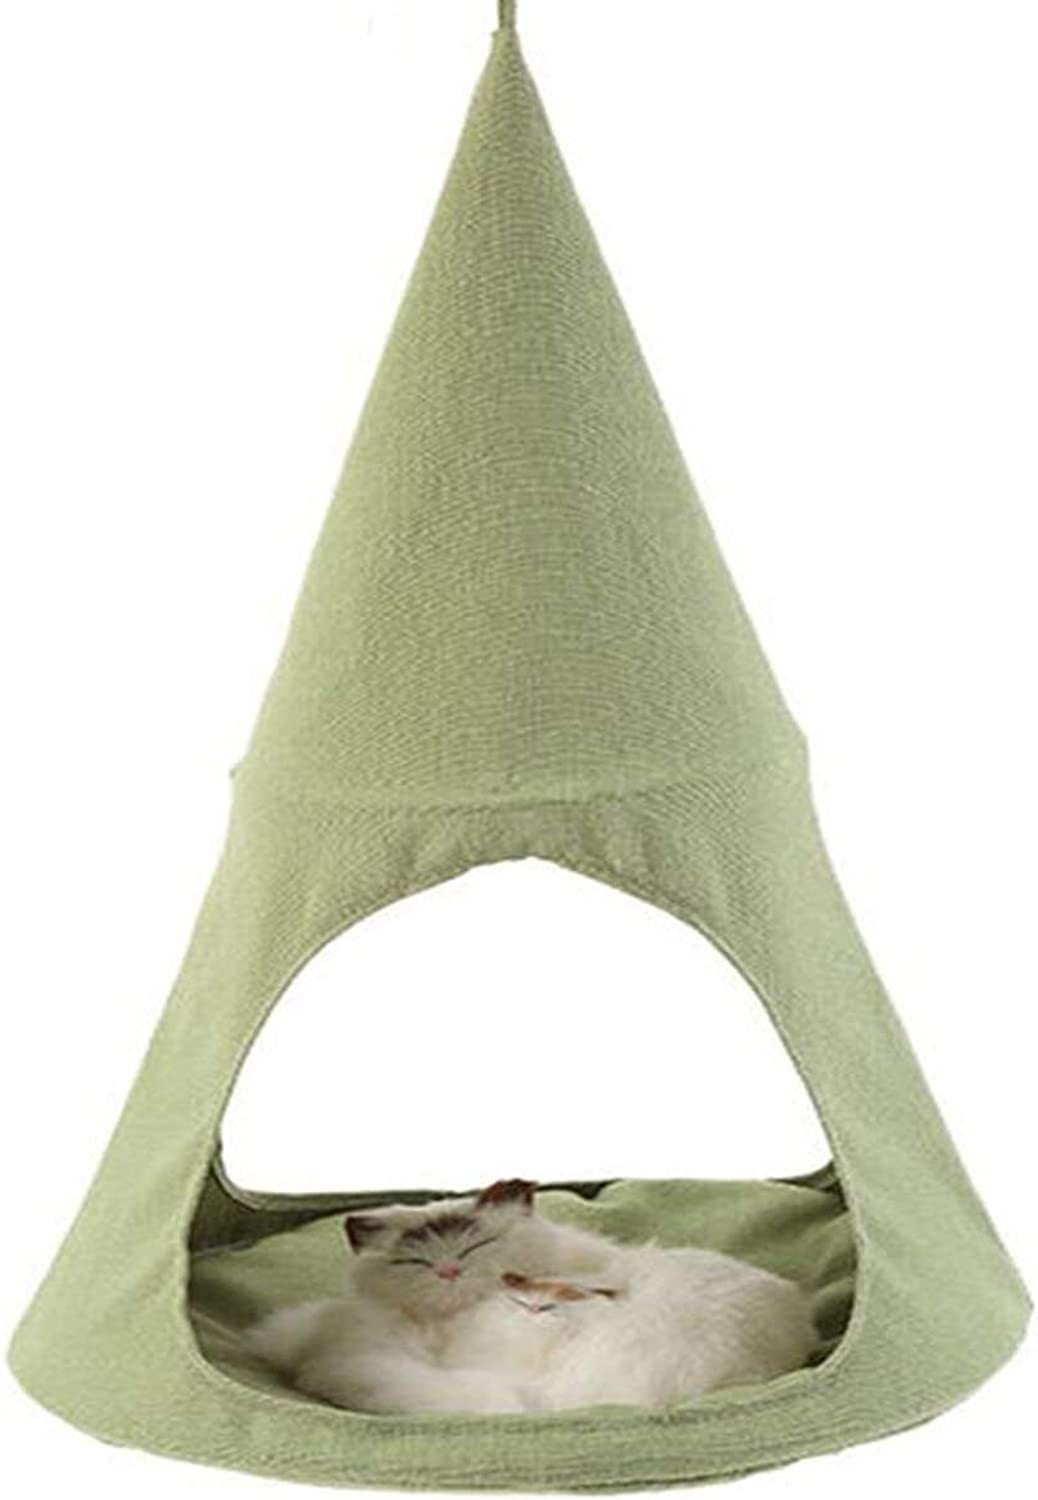 IW.HLMF Cat Hammock Bed Tent Comfortable Hanging Perch Pet Hammock Bed Cradle for Cats Small Dogs Rabbits other